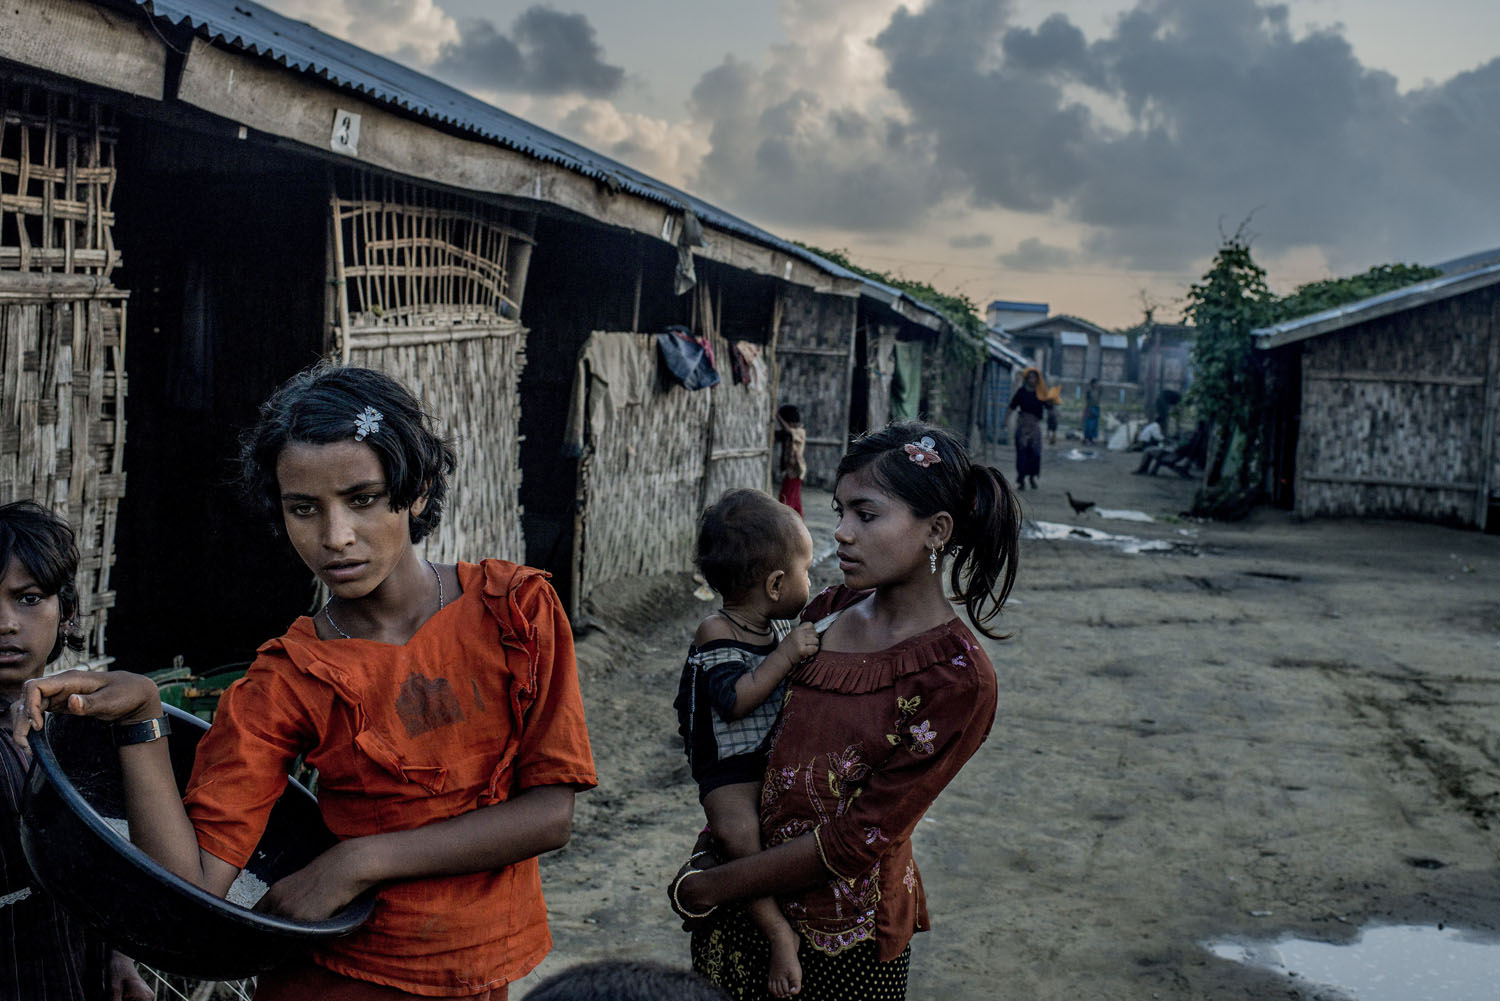 From the series: Bleak Existence for Myanmar's Rohingya MinorityA camp full of Rohingya refugees on the edge of Sittwe, Myanmar, Oct. 18, 2014.